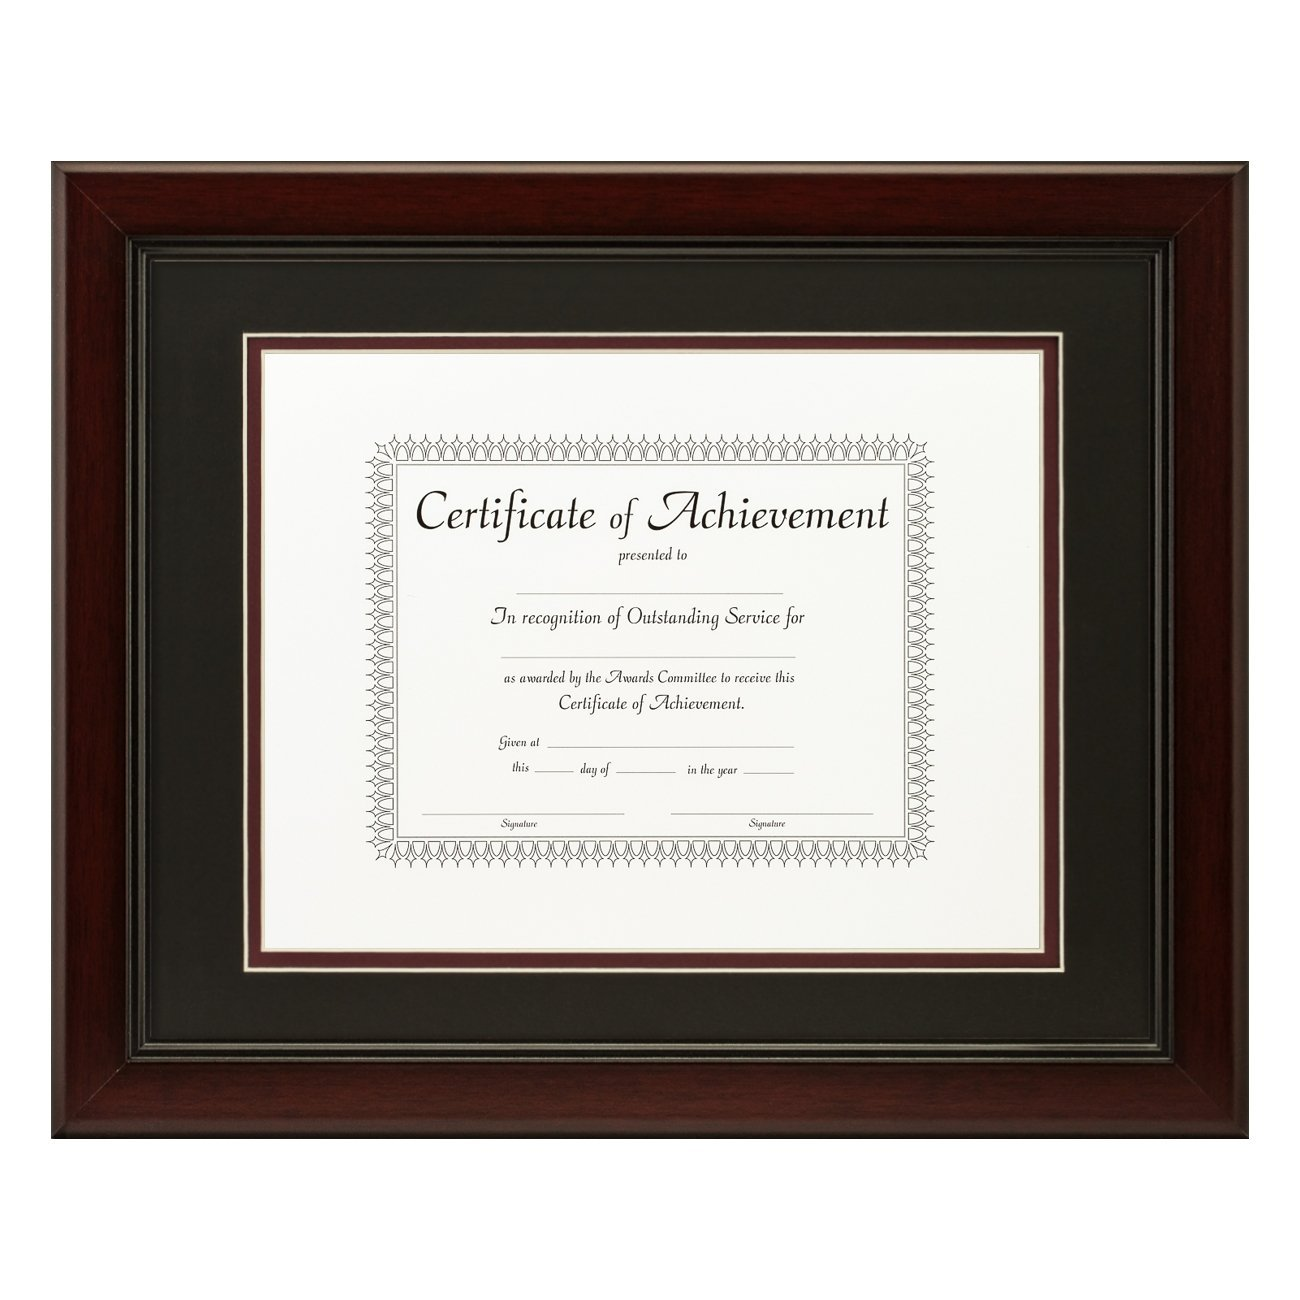 Craig Frames 11x14-Inch Mahogany Document Frame, Black / Maroon Double Mat with Single 8.5x11-Inch Opening